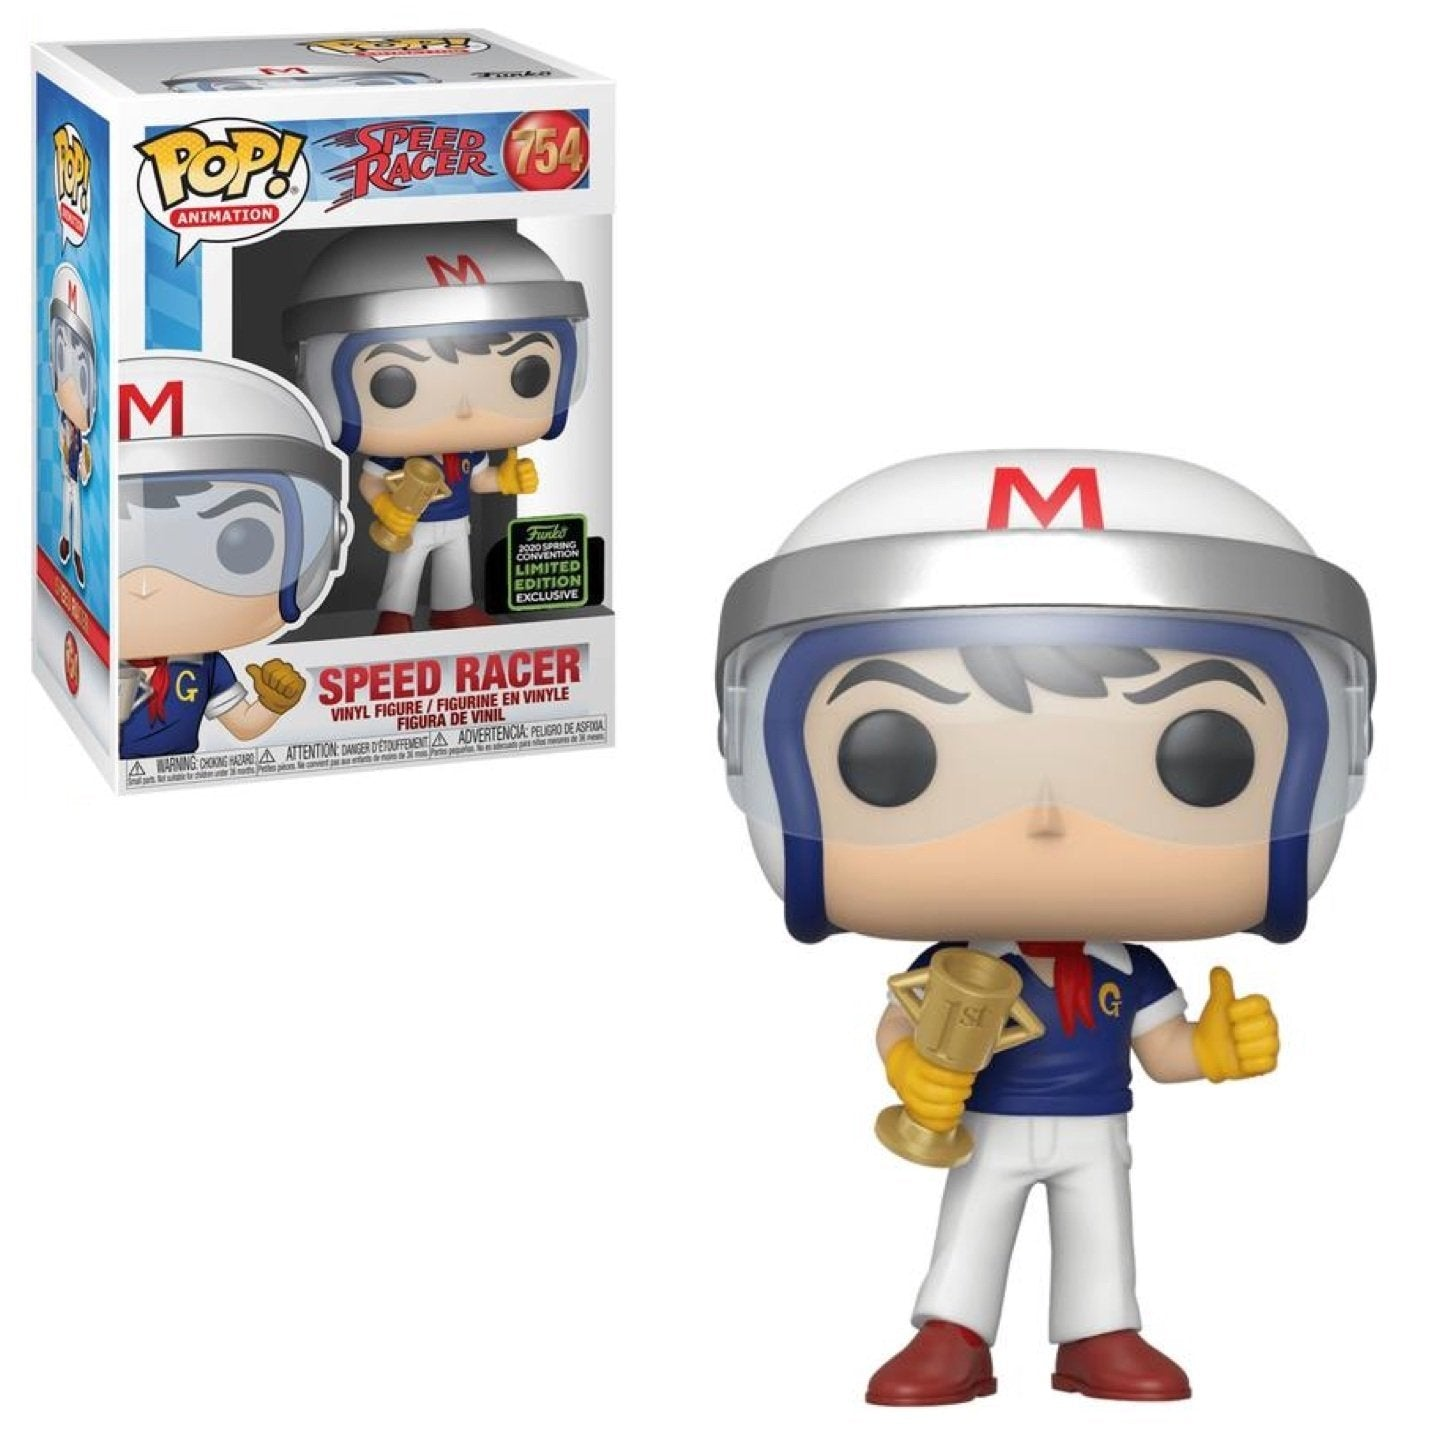 Funko Pop! Animation: Speed Racer - Speed Racer #754 ECCC Exclusive